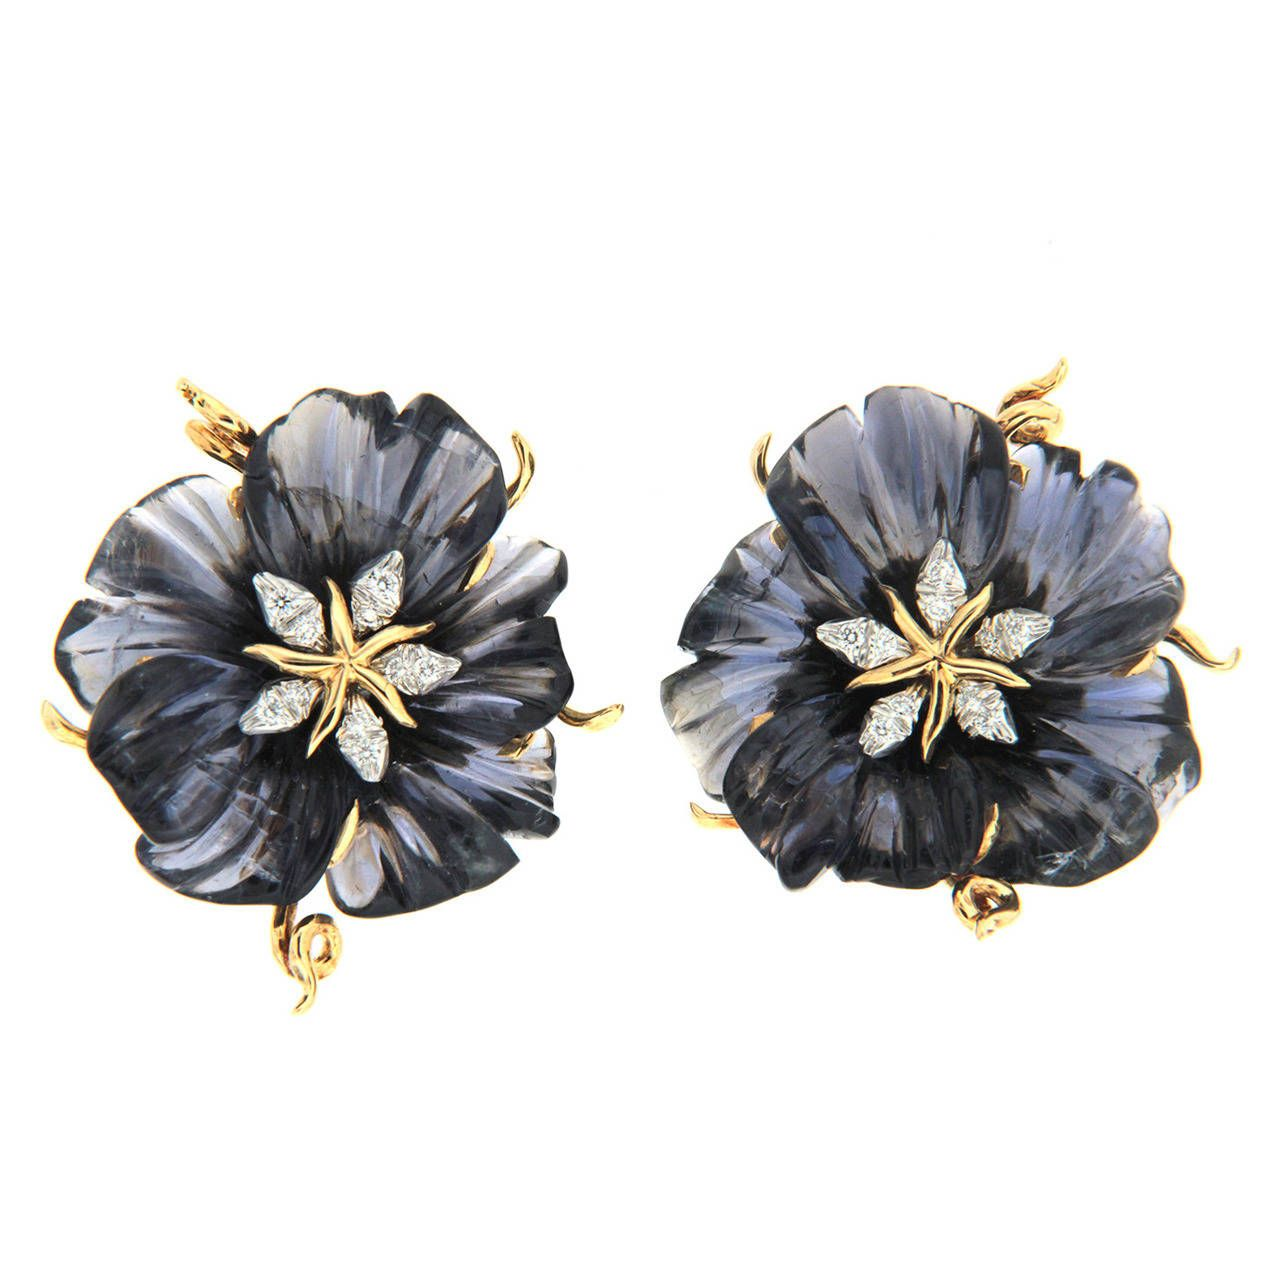 Carved Iolite Flower Earrings with Diamonds | From a unique collection of vintage clip-on earrings at https://www.1stdibs.com/jewelry/earrings/clip-on-earrings/